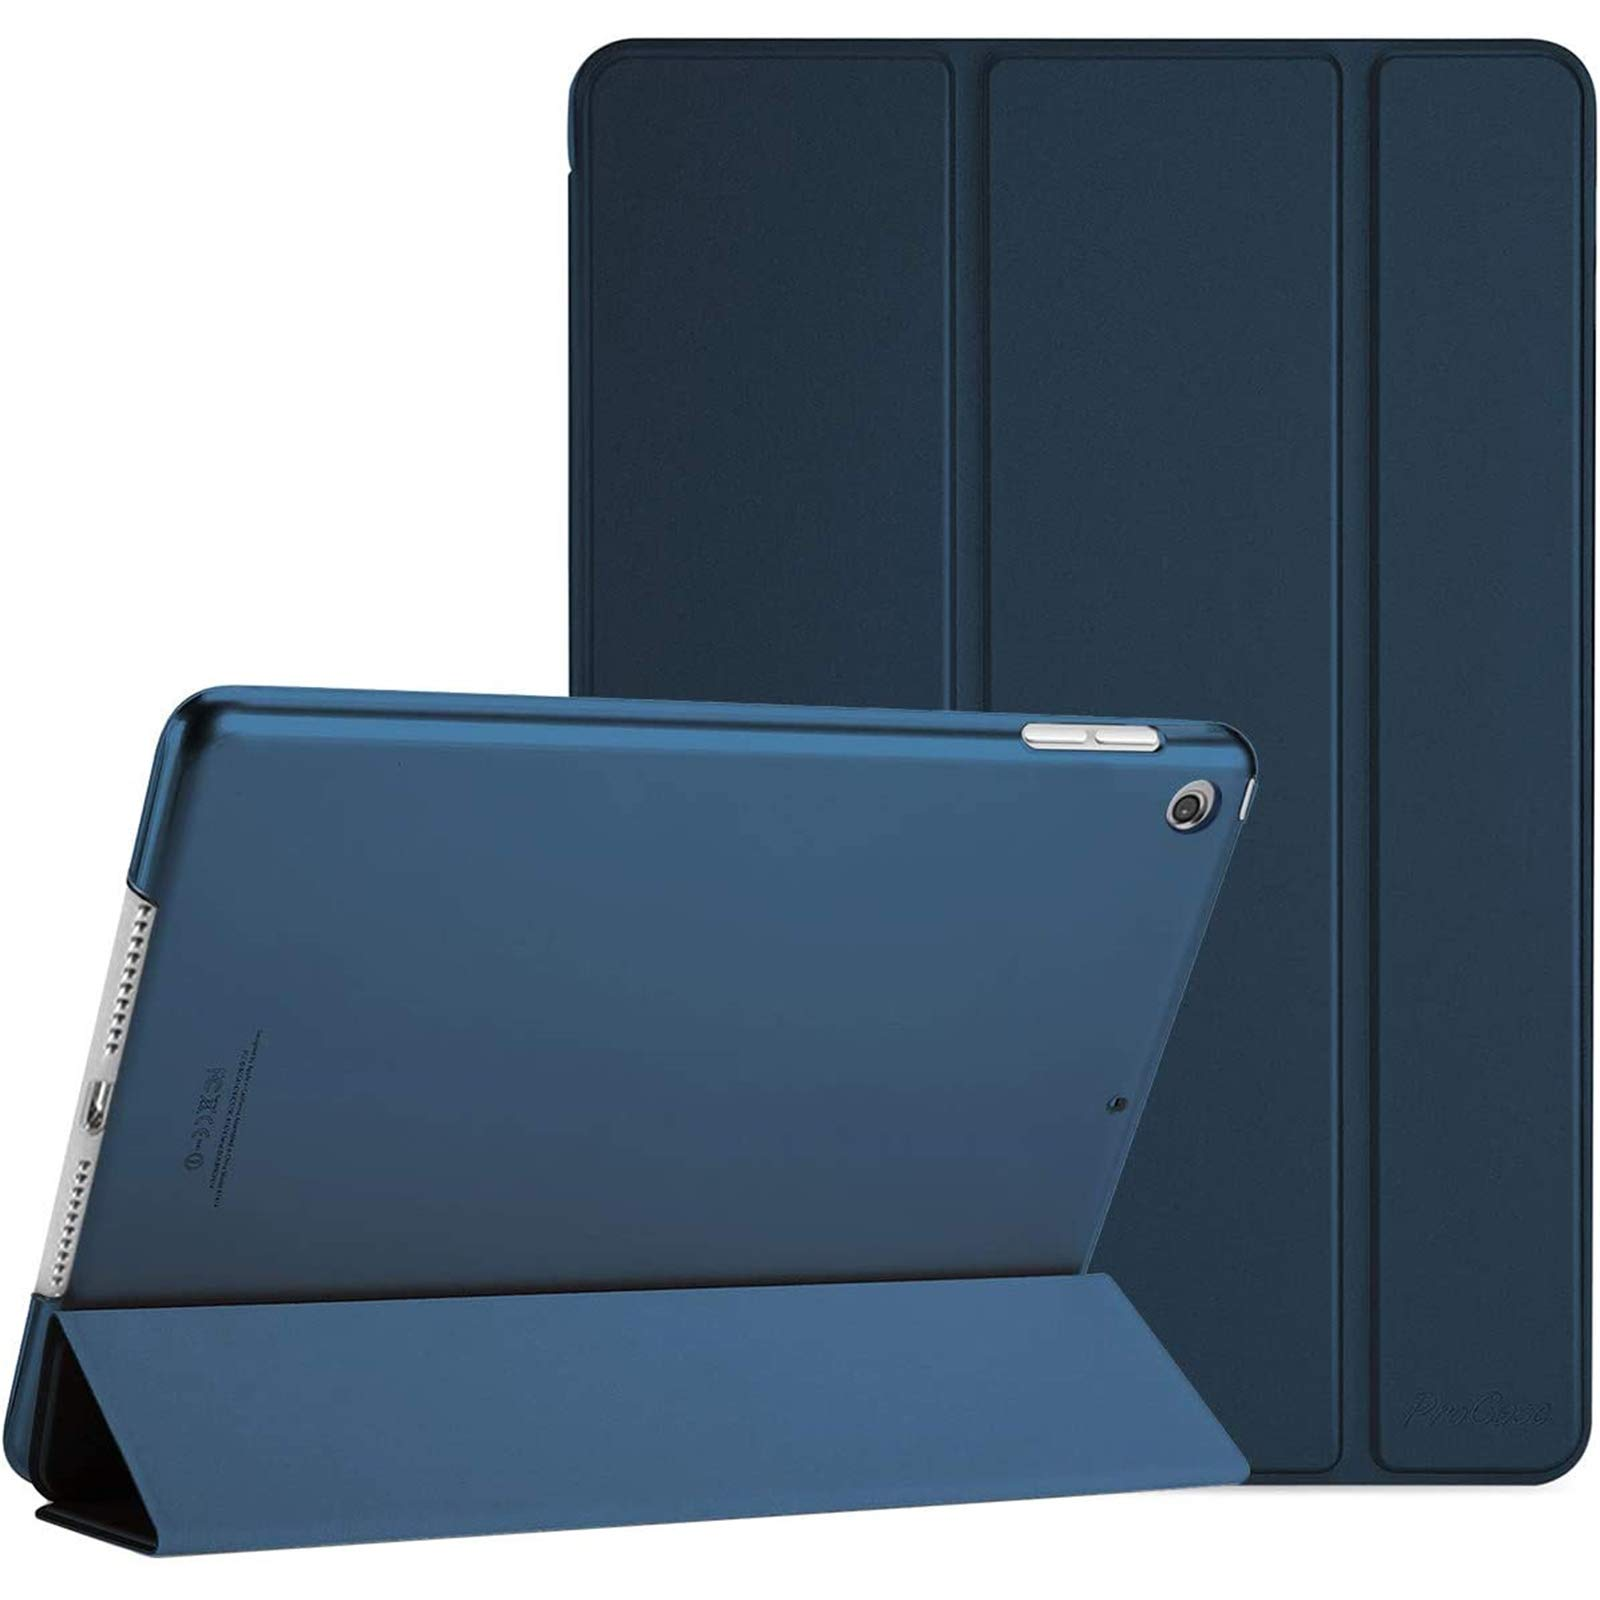 ProCase iPad 10.2 Case 2020 iPad 8th Generation / 2019 iPad 7th Gen Case, Slim Stand Hard Back Shell Protective Smart Cover Case for iPad 10.2 Inch -Navy